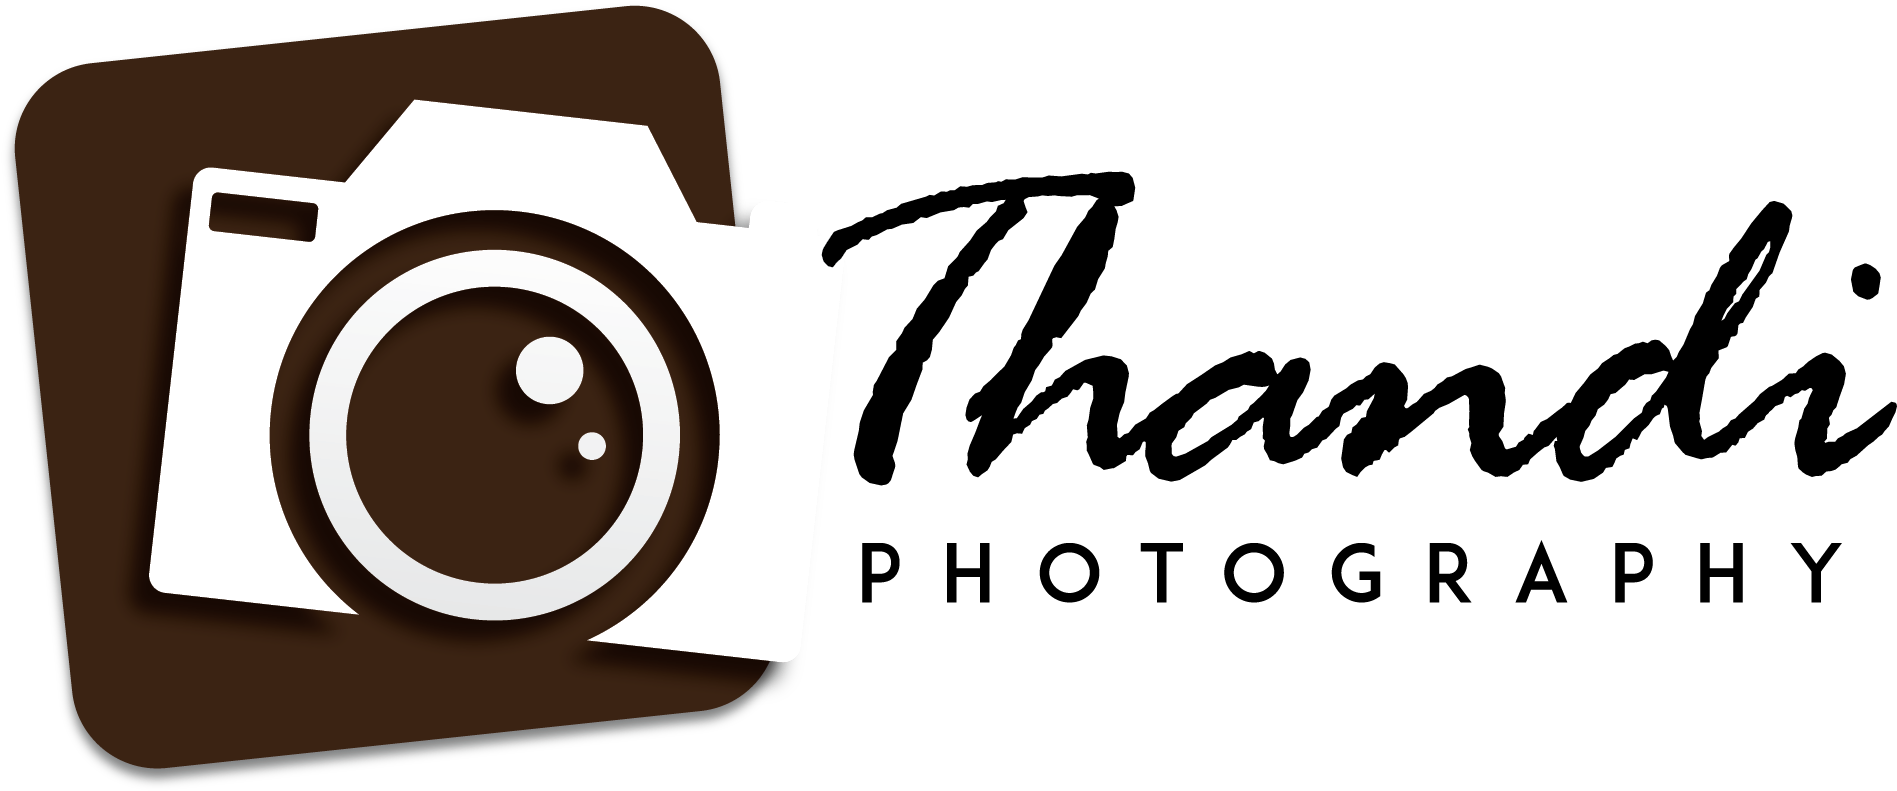 Photography camera logo design png. Download image with no